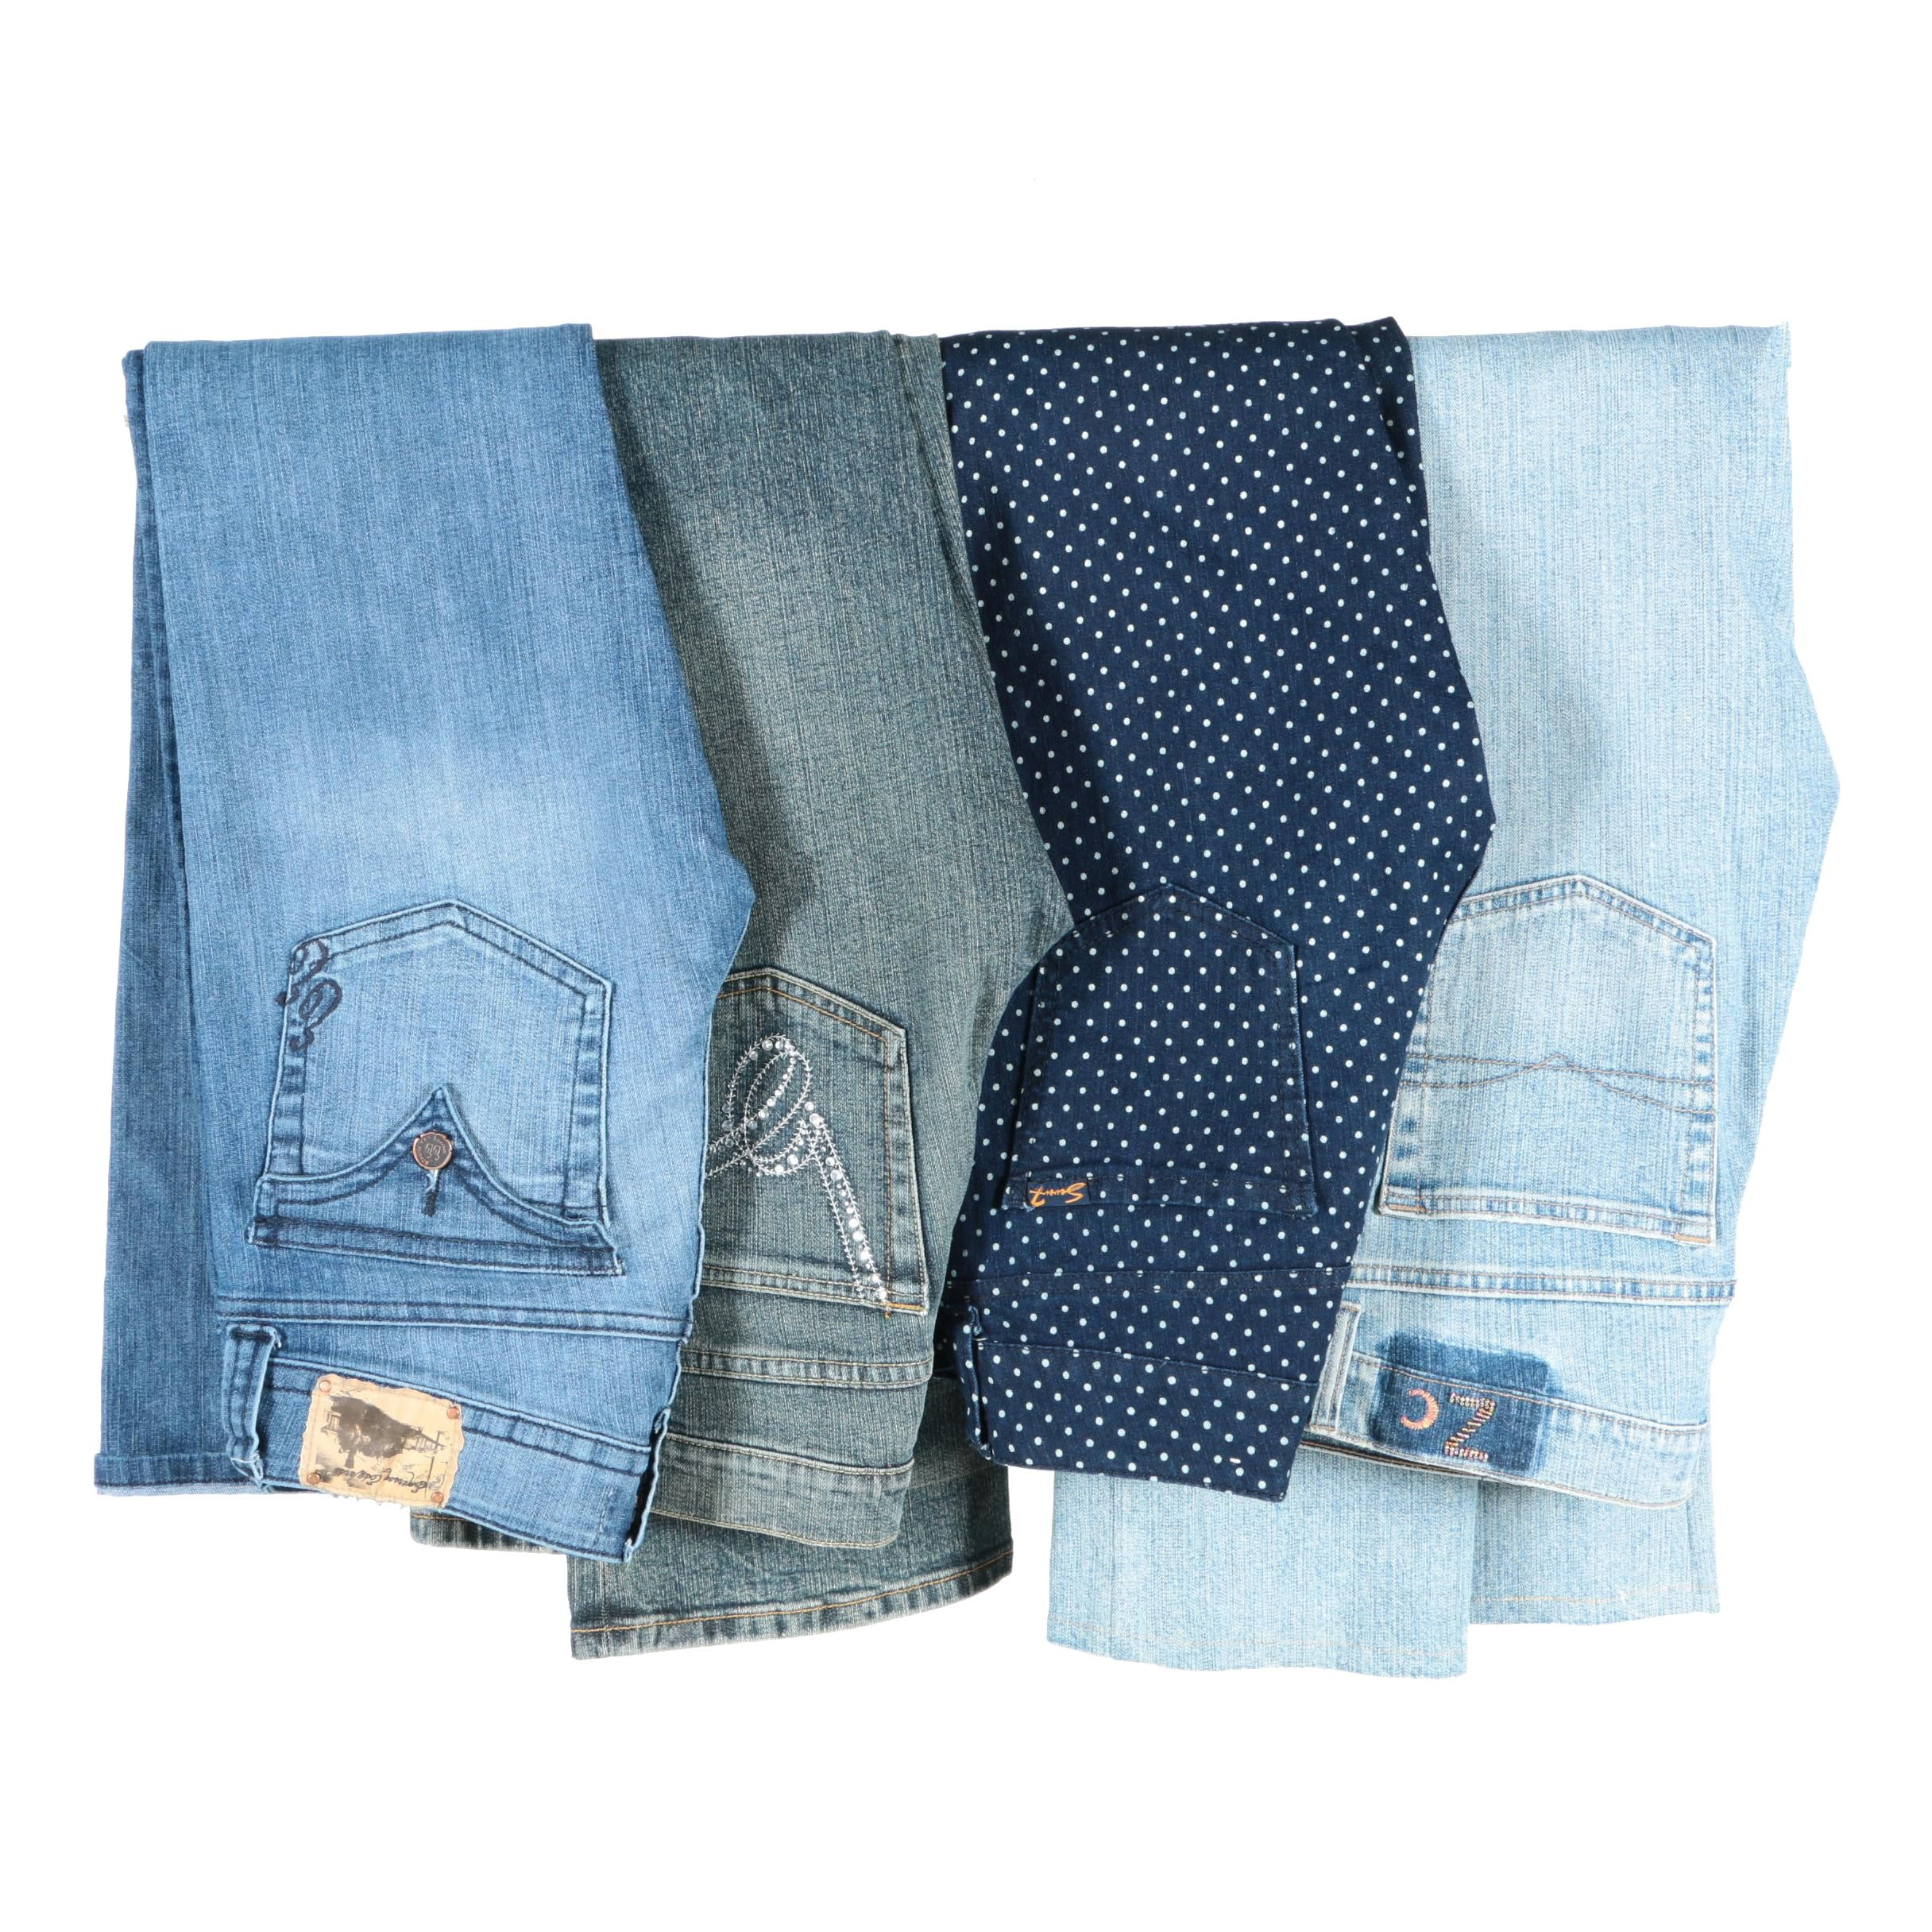 Women's Jeans Including Seven Jeans